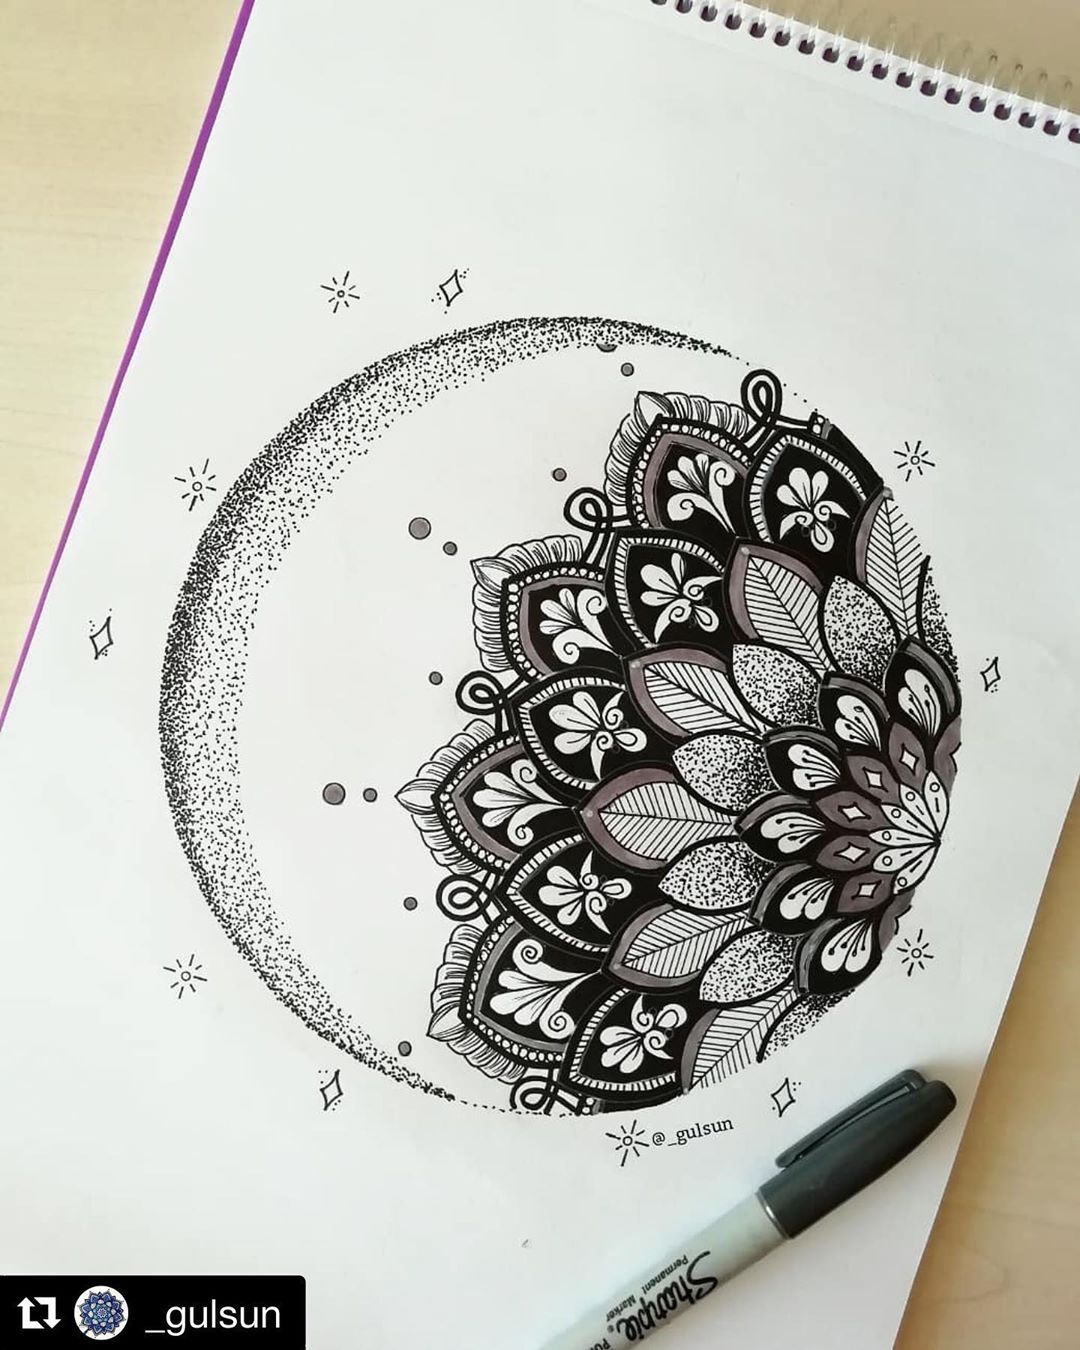 """Photo of Mandala Sharing Page on Instagram: """"#Repost @_gulsun . Tag your work with #ilovesharingmandala ・・・ 🌙🌙🌙 #mandala #mandalas #mandalaart #mandalatattoo #mandalapassion…"""""""